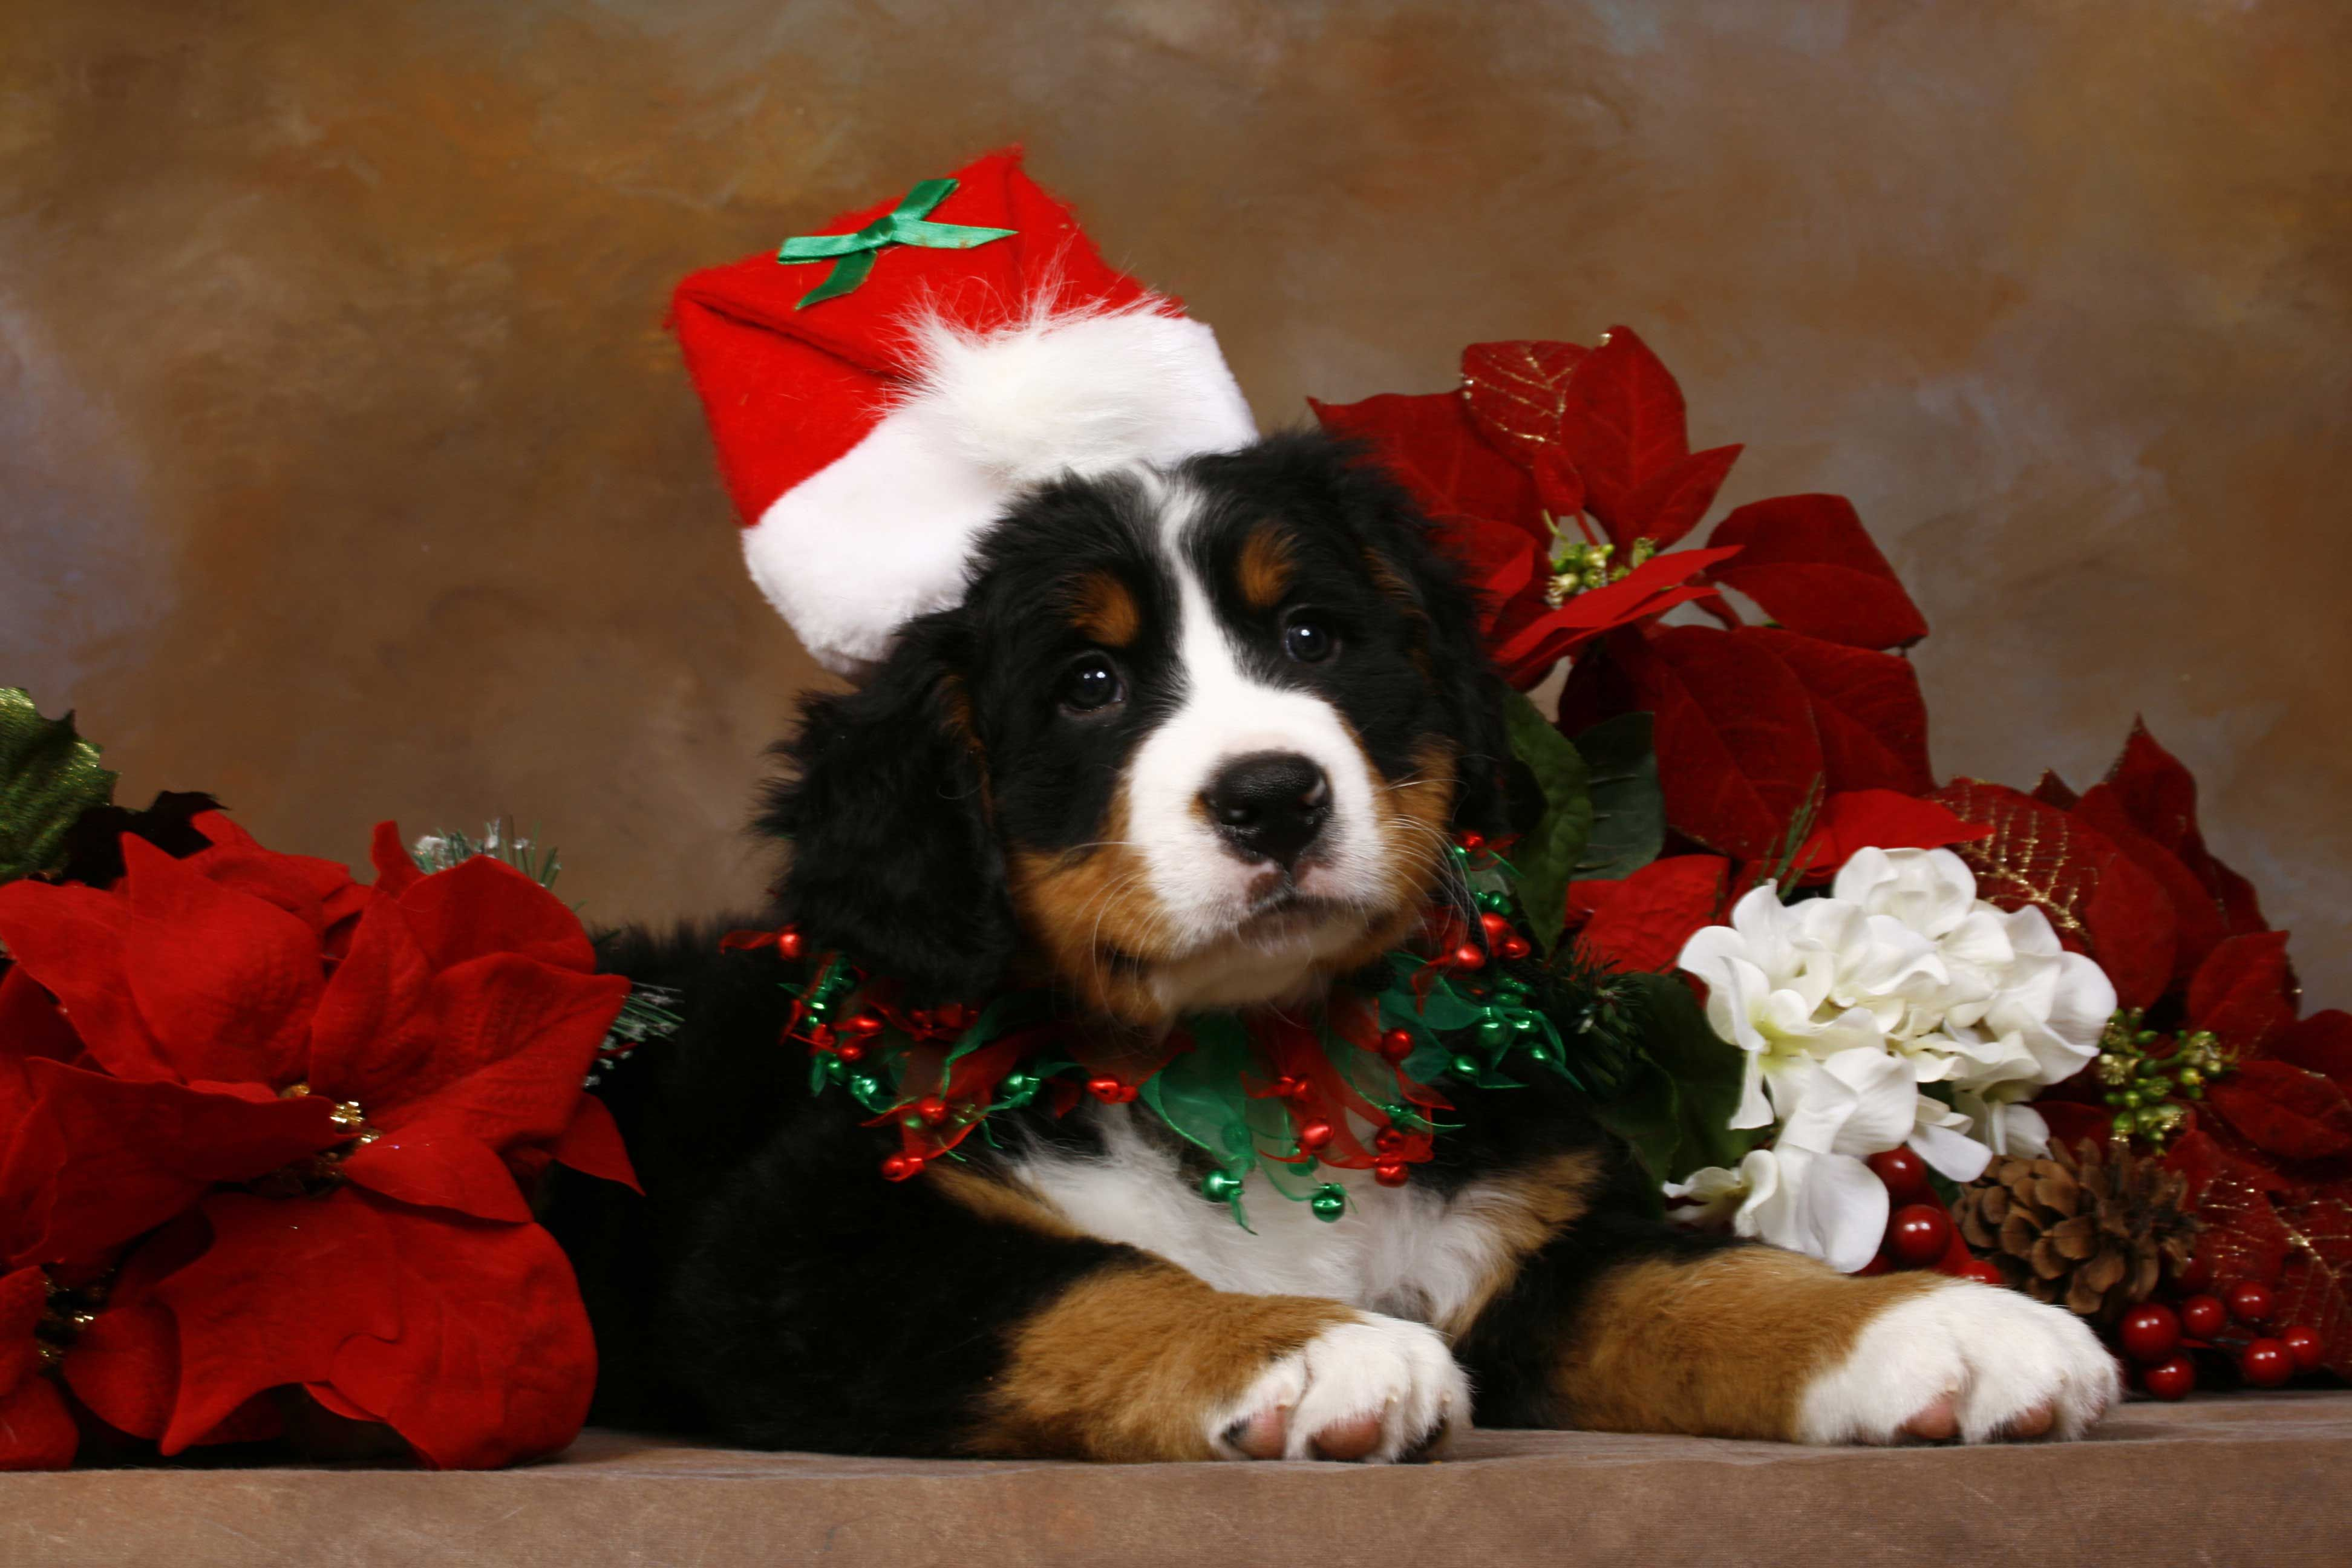 Christmas Puppy Images Wallpaper Christmas Dog Dog Christmas Pictures Christmas Puppy Photos